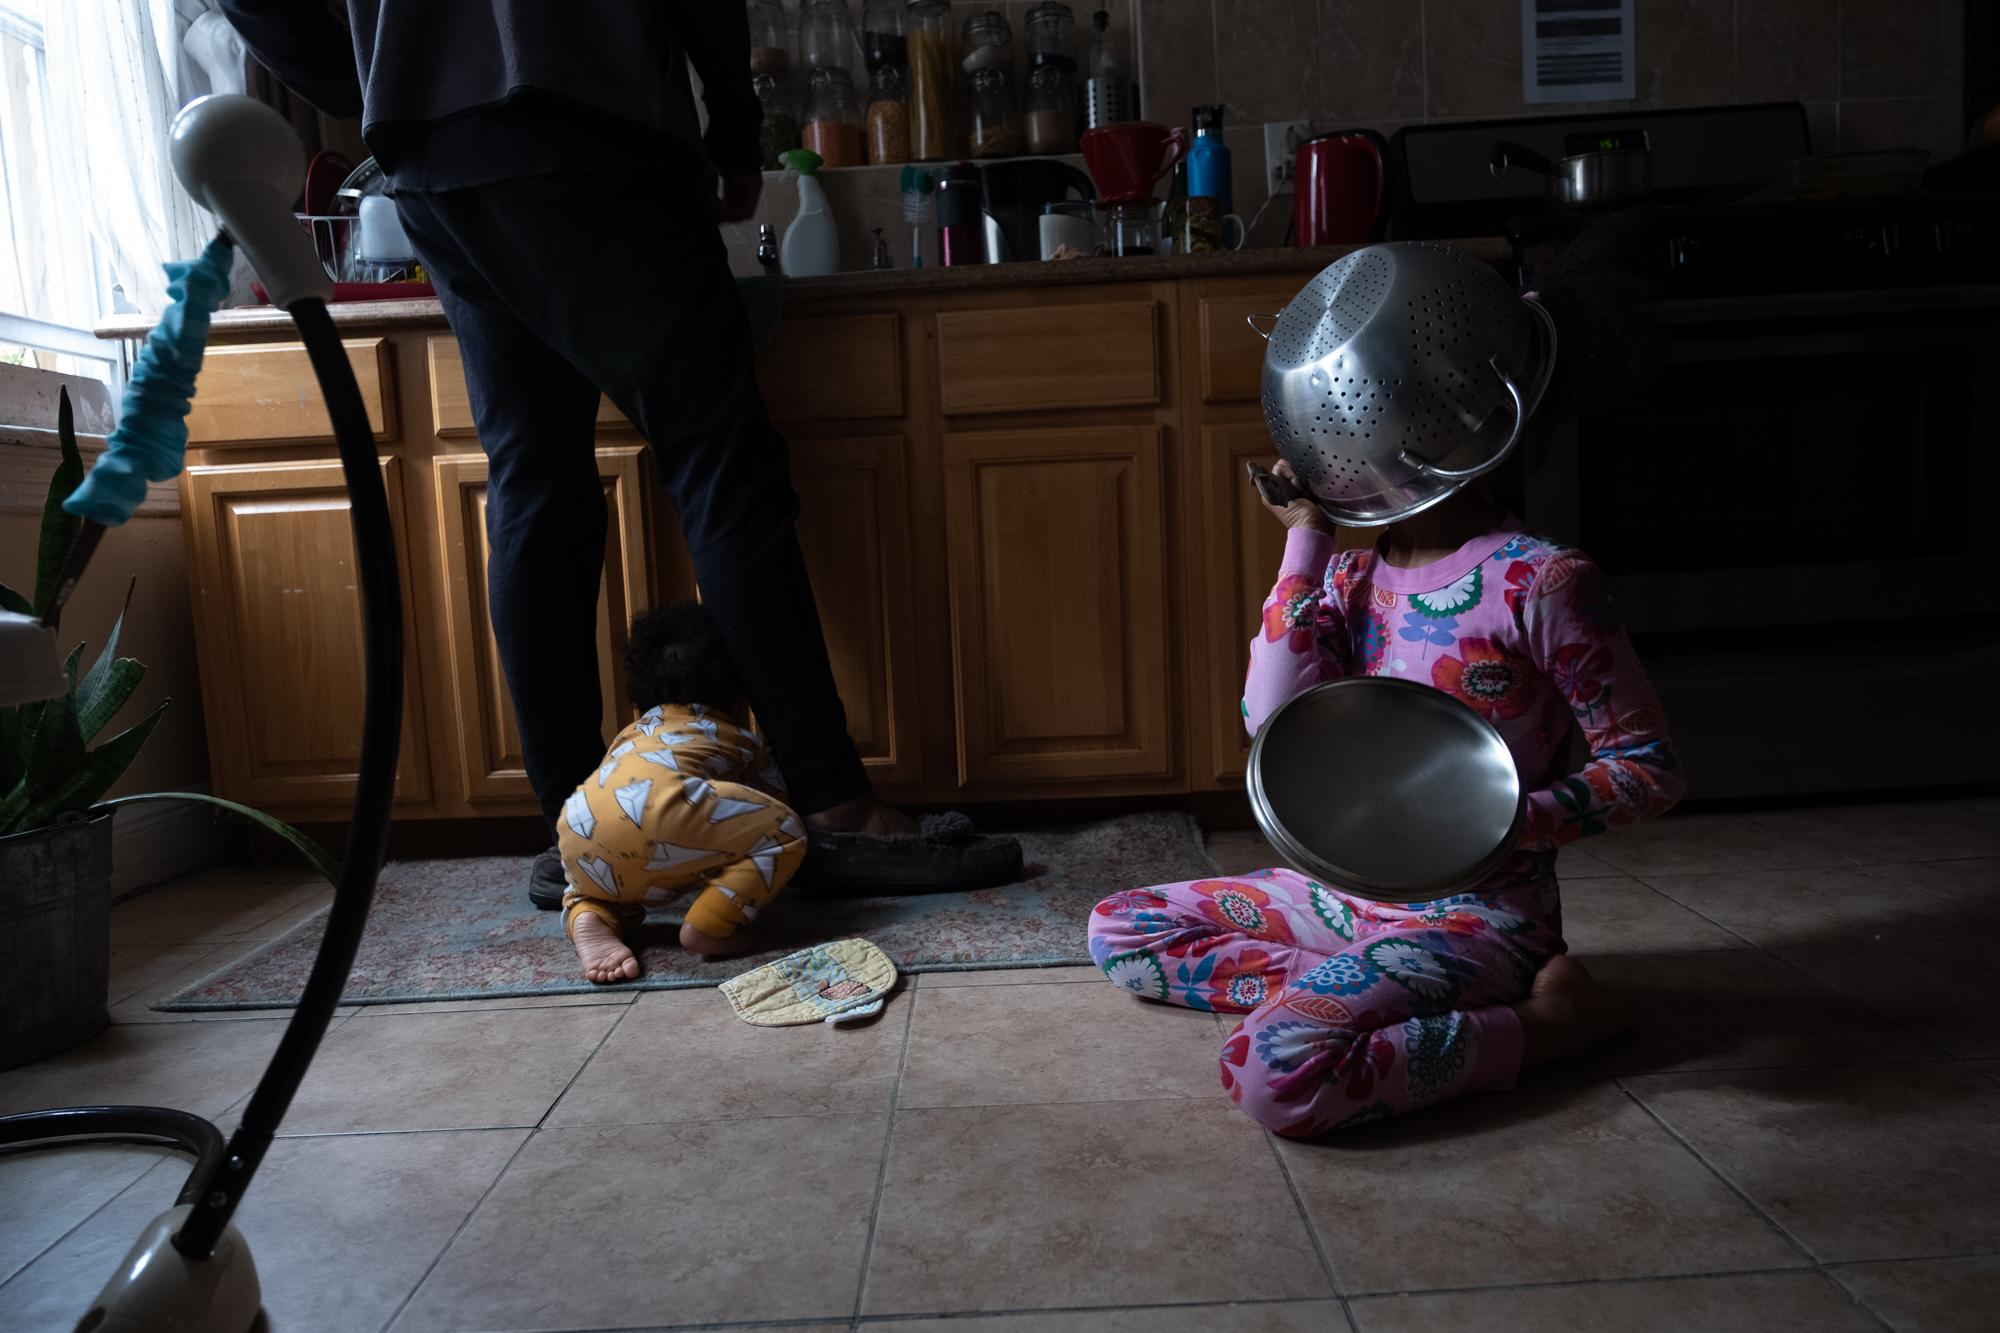 April 7, 2020: The children amuse themselves while Thierry does the dishes. I drink coffee and think about the social impact of the virus flattening so many people physically, emotionally, financially.